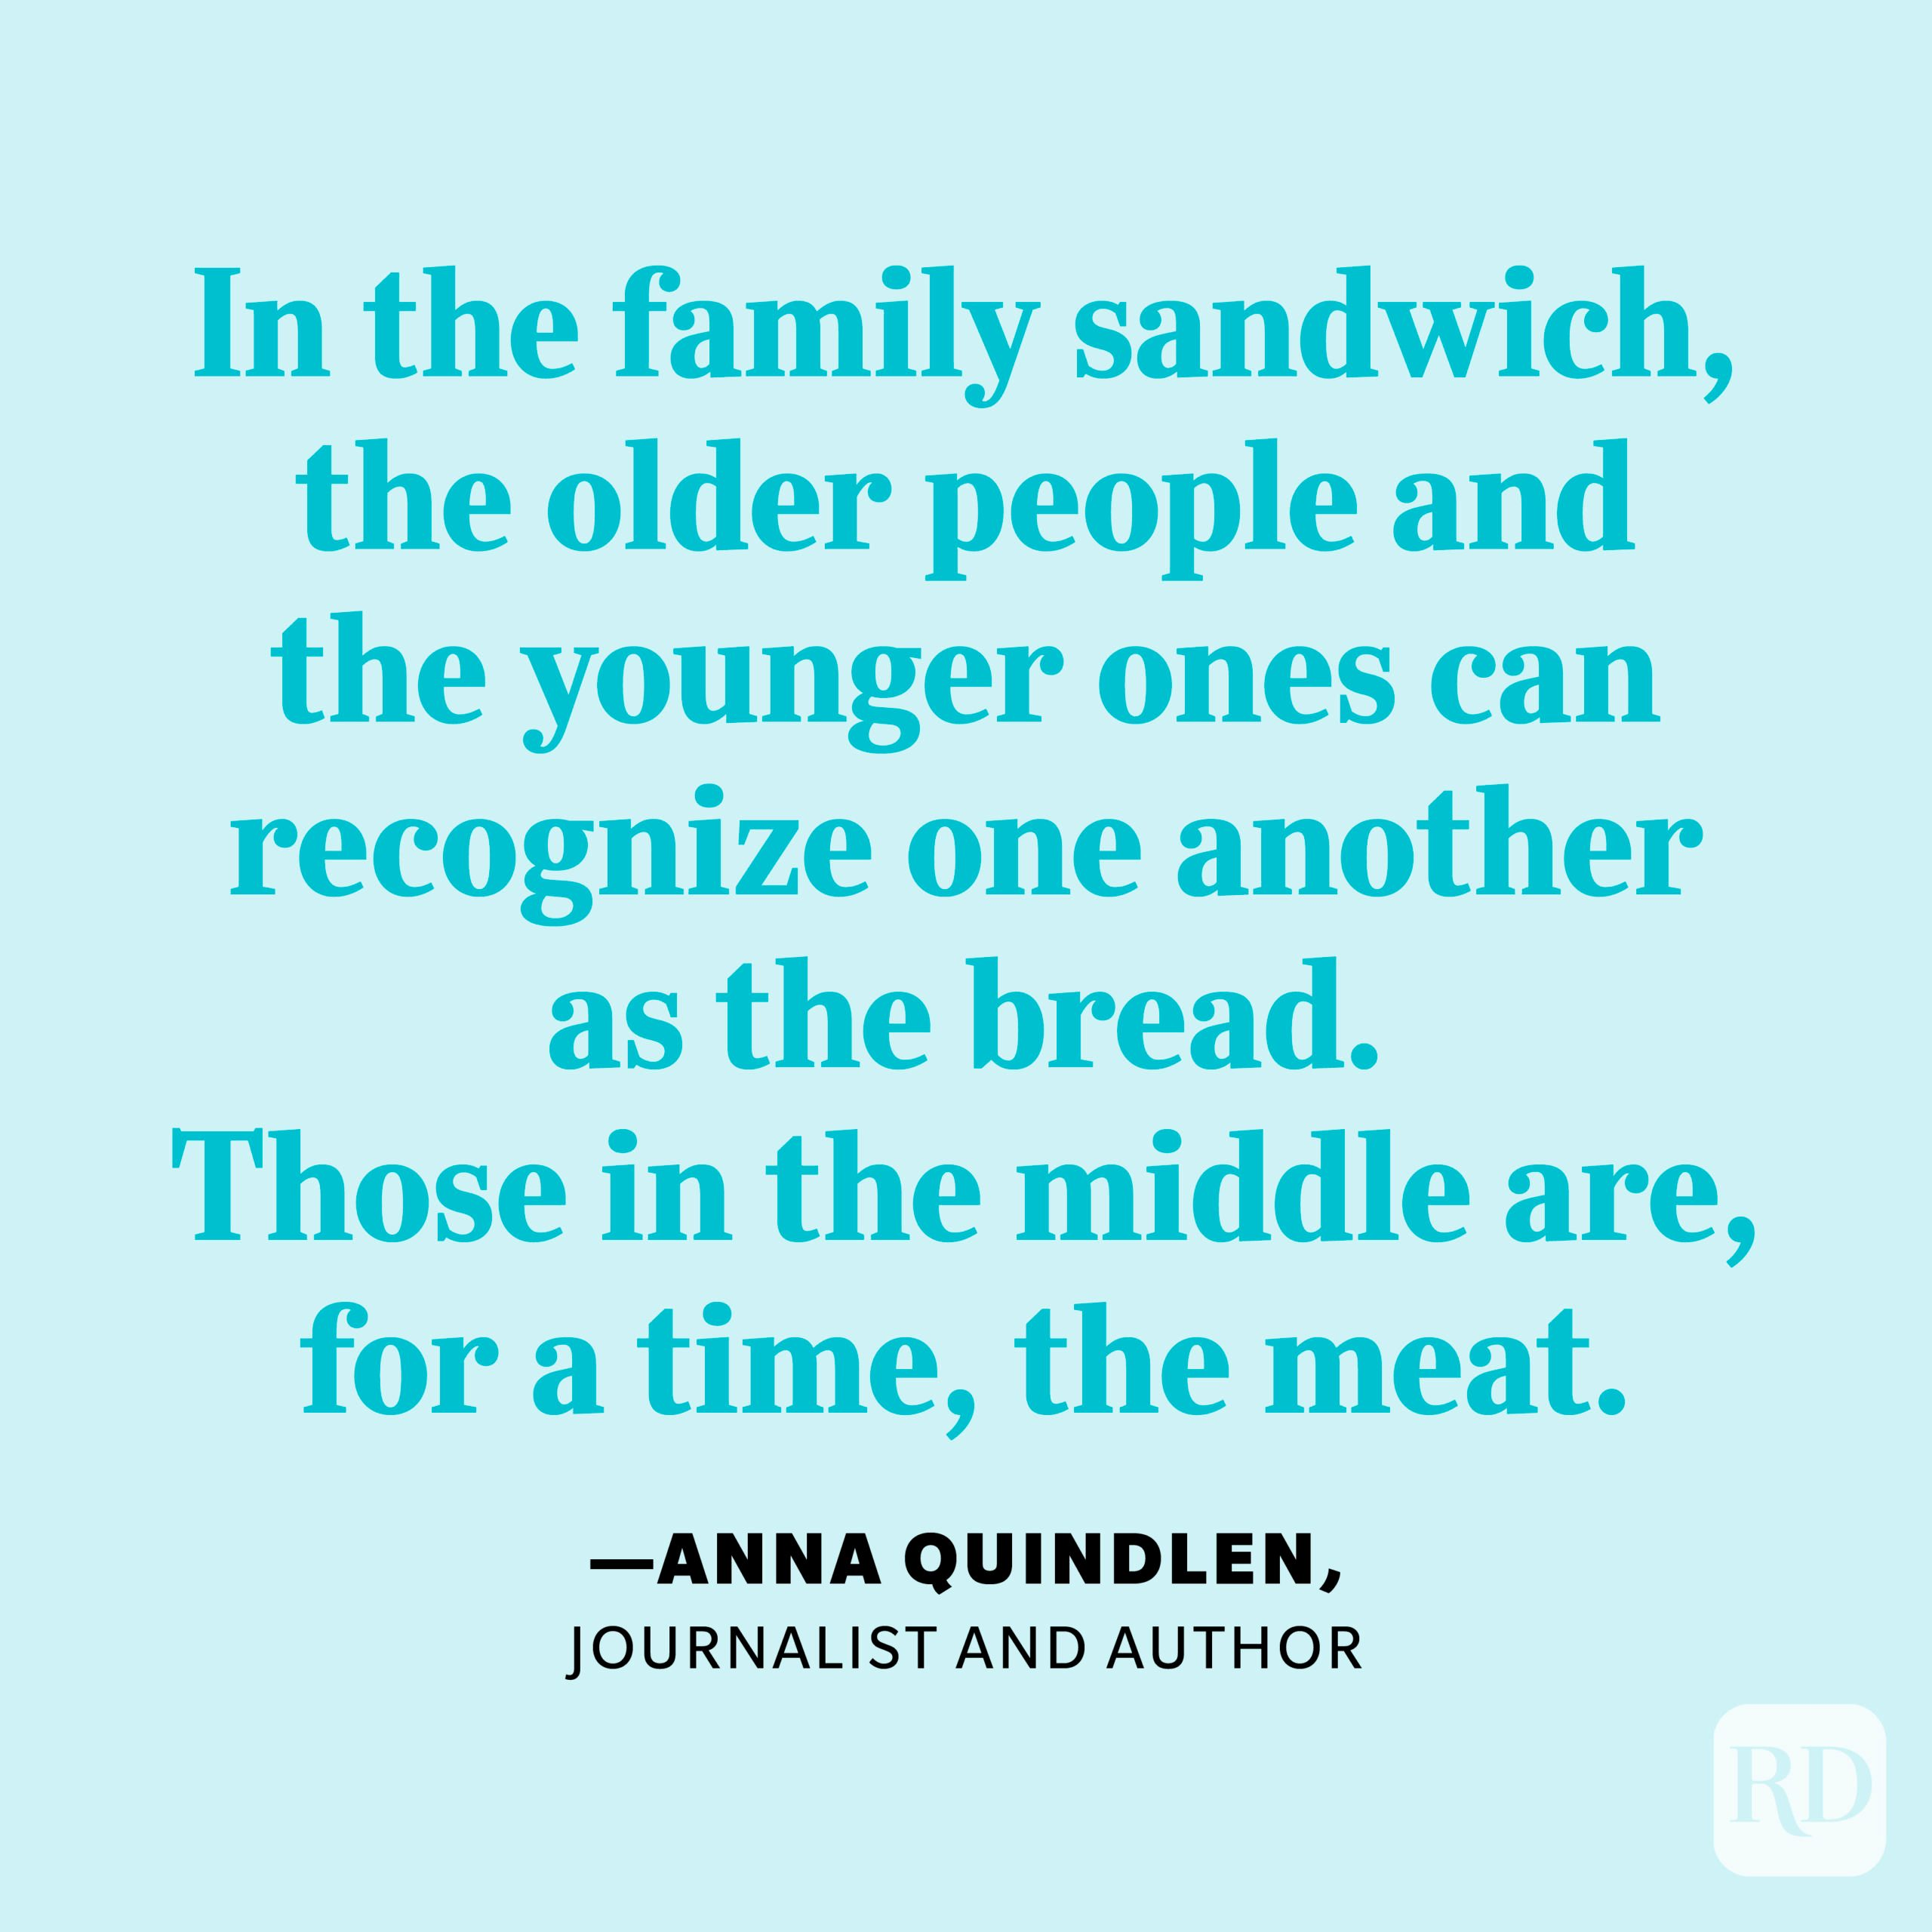 """""""In the family sandwich, the older people and the younger ones can recognize one another as the bread. Those in the middle are, for a time, the meat."""" —Anna Quindlen, journalist and author"""